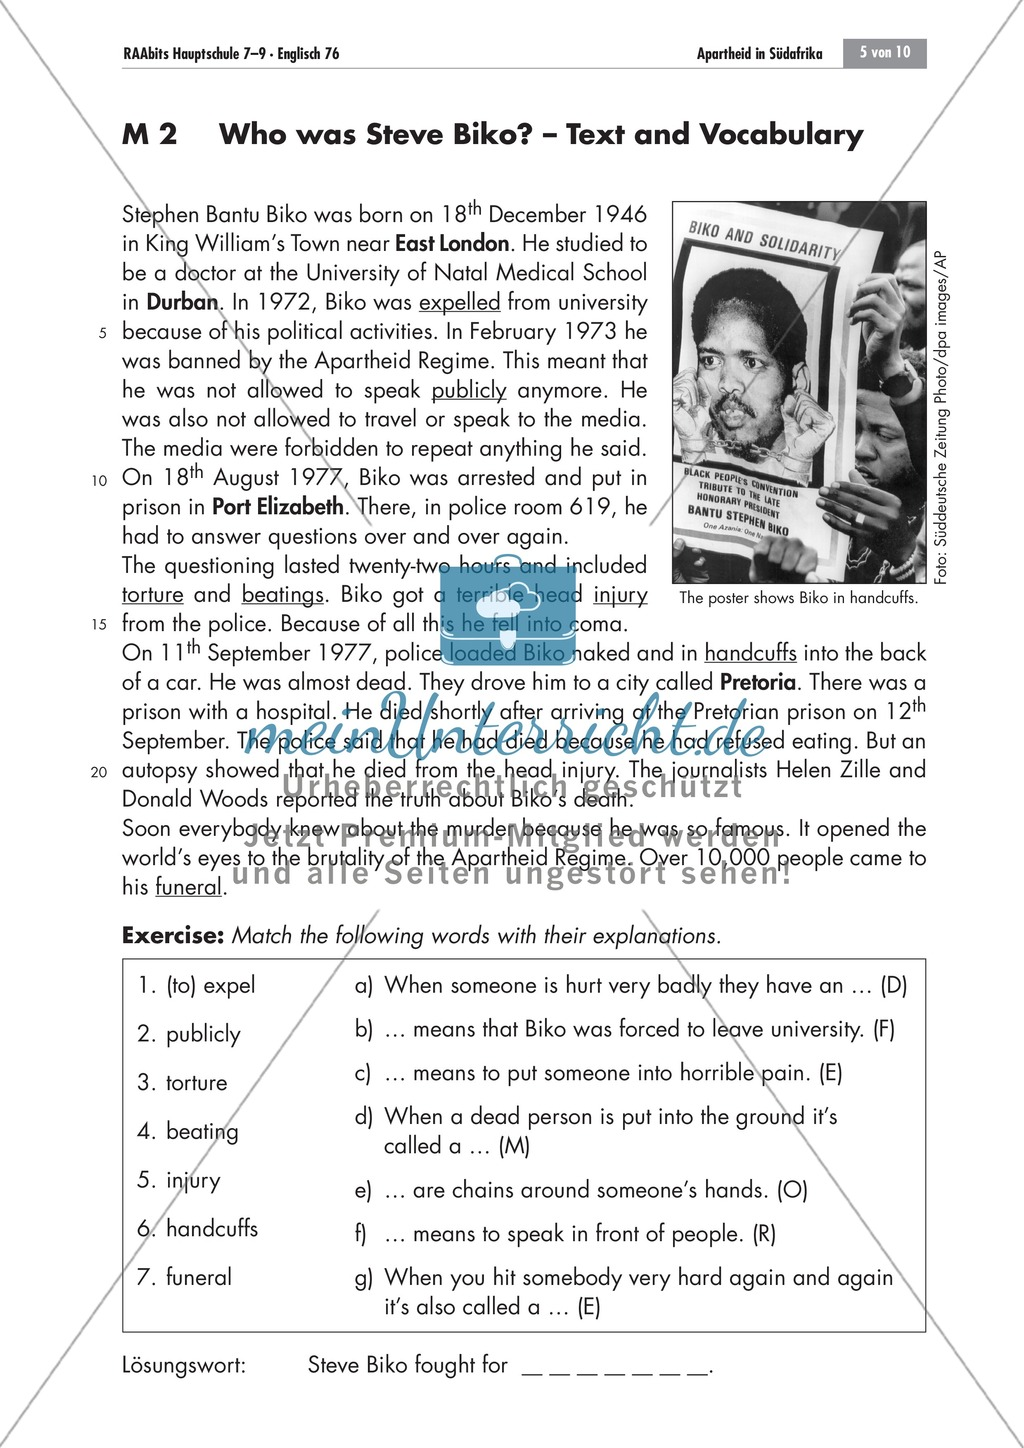 Apartheid South Africa: Steve Biko's story; worksheets and explanations Preview 0